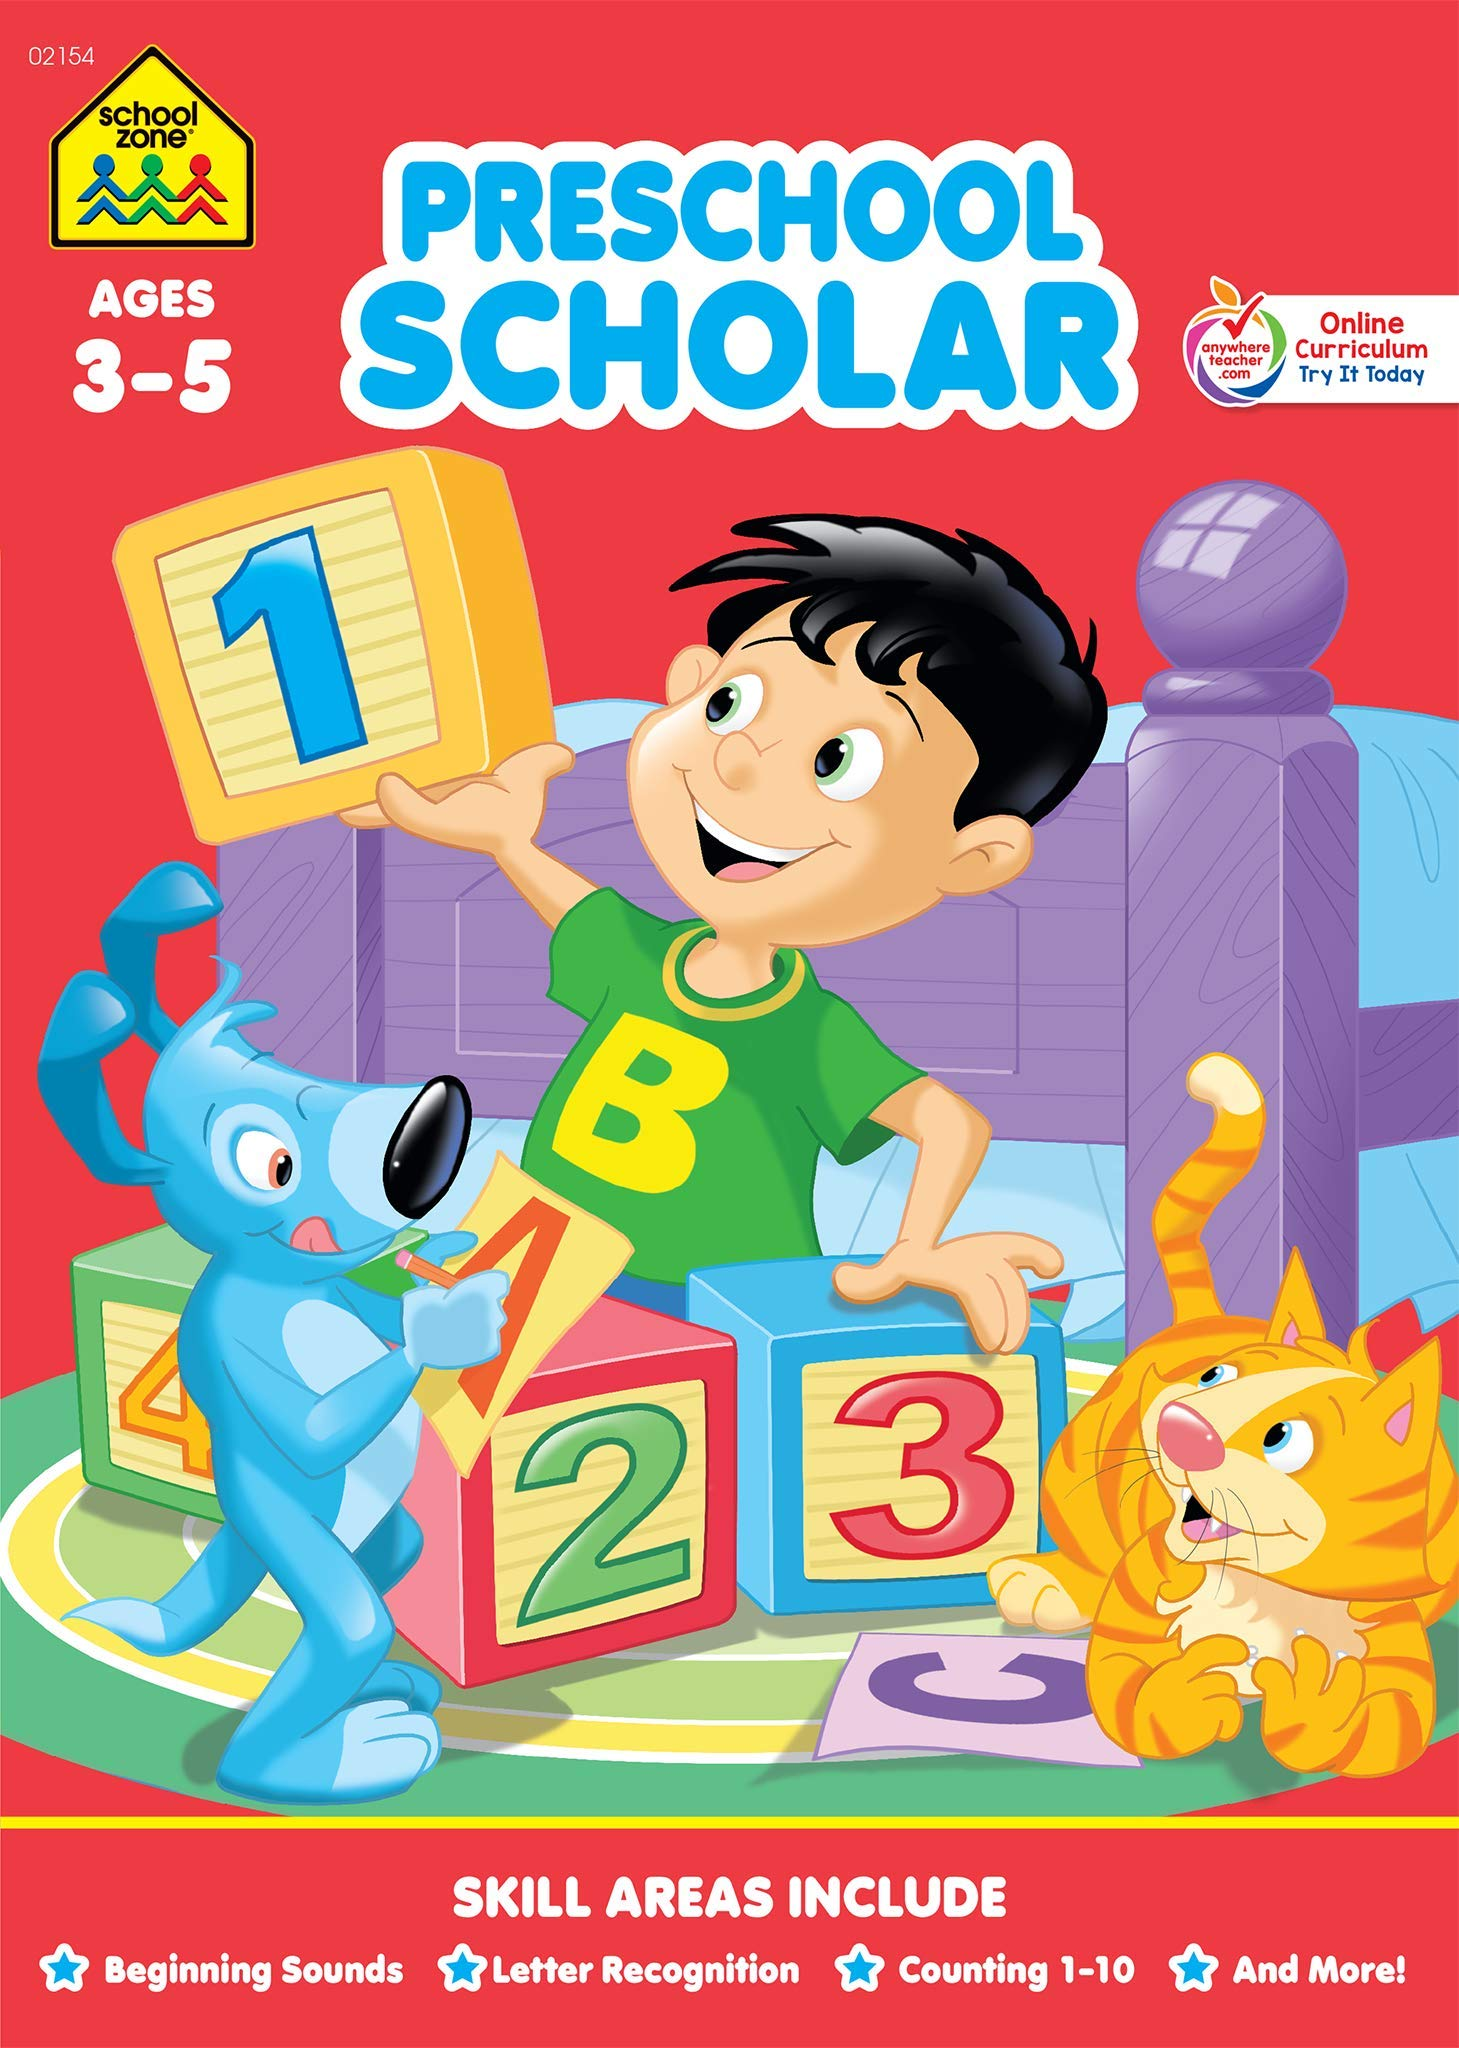 1-10 counting and number recognition learning card preschool aged 3-5